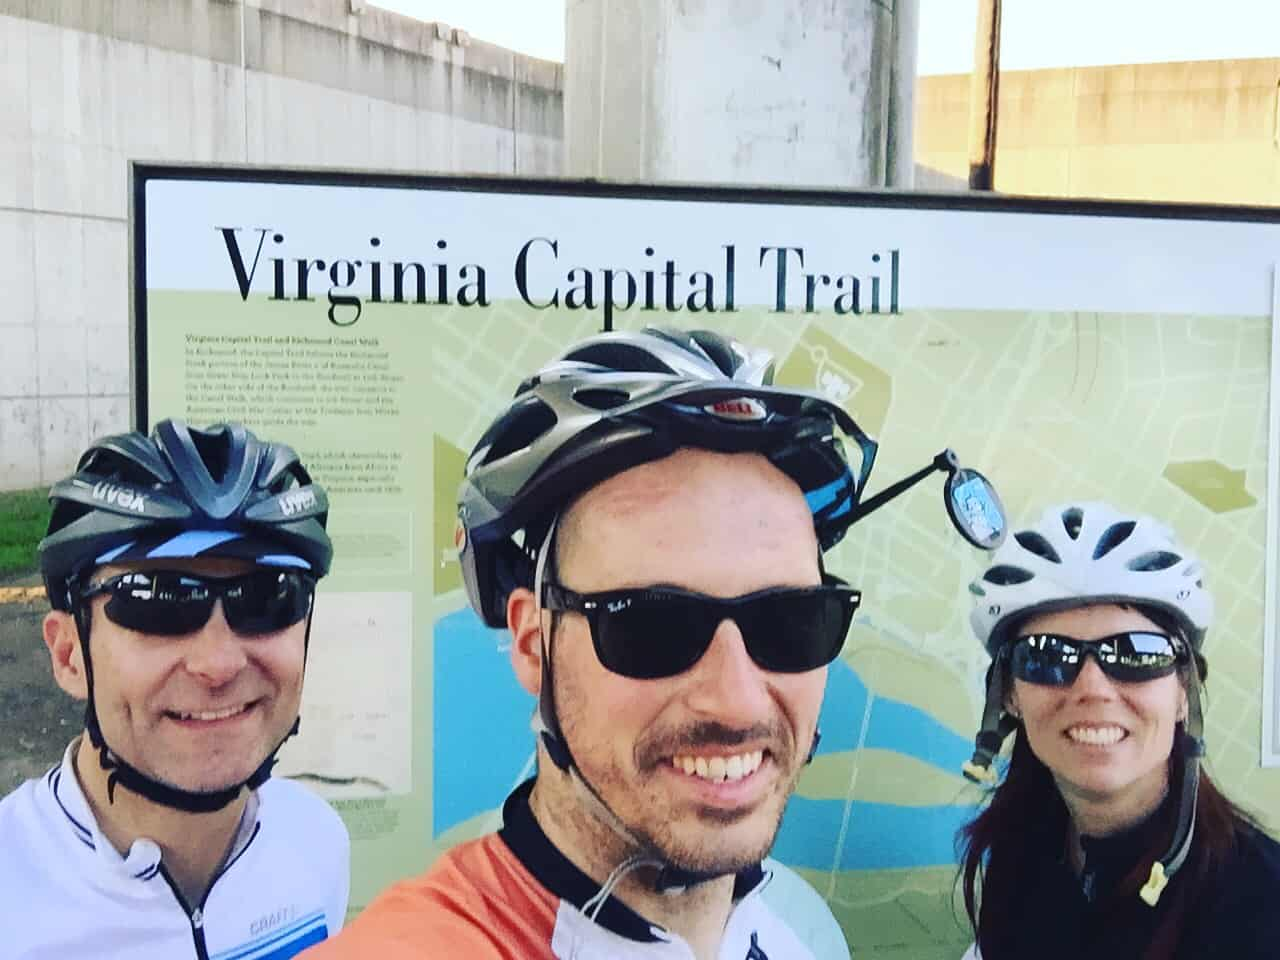 Wassup Richmond, Virginia! Rode the length of the amazing Virginia Capital Trail today!!! 52 miles of sweet off road bike path! This trail didn't exist in 2005! #biketour #biketouring #virginialcapitaltrail #transamerica2016 #🚴 #smugglinggrapes #80mileday